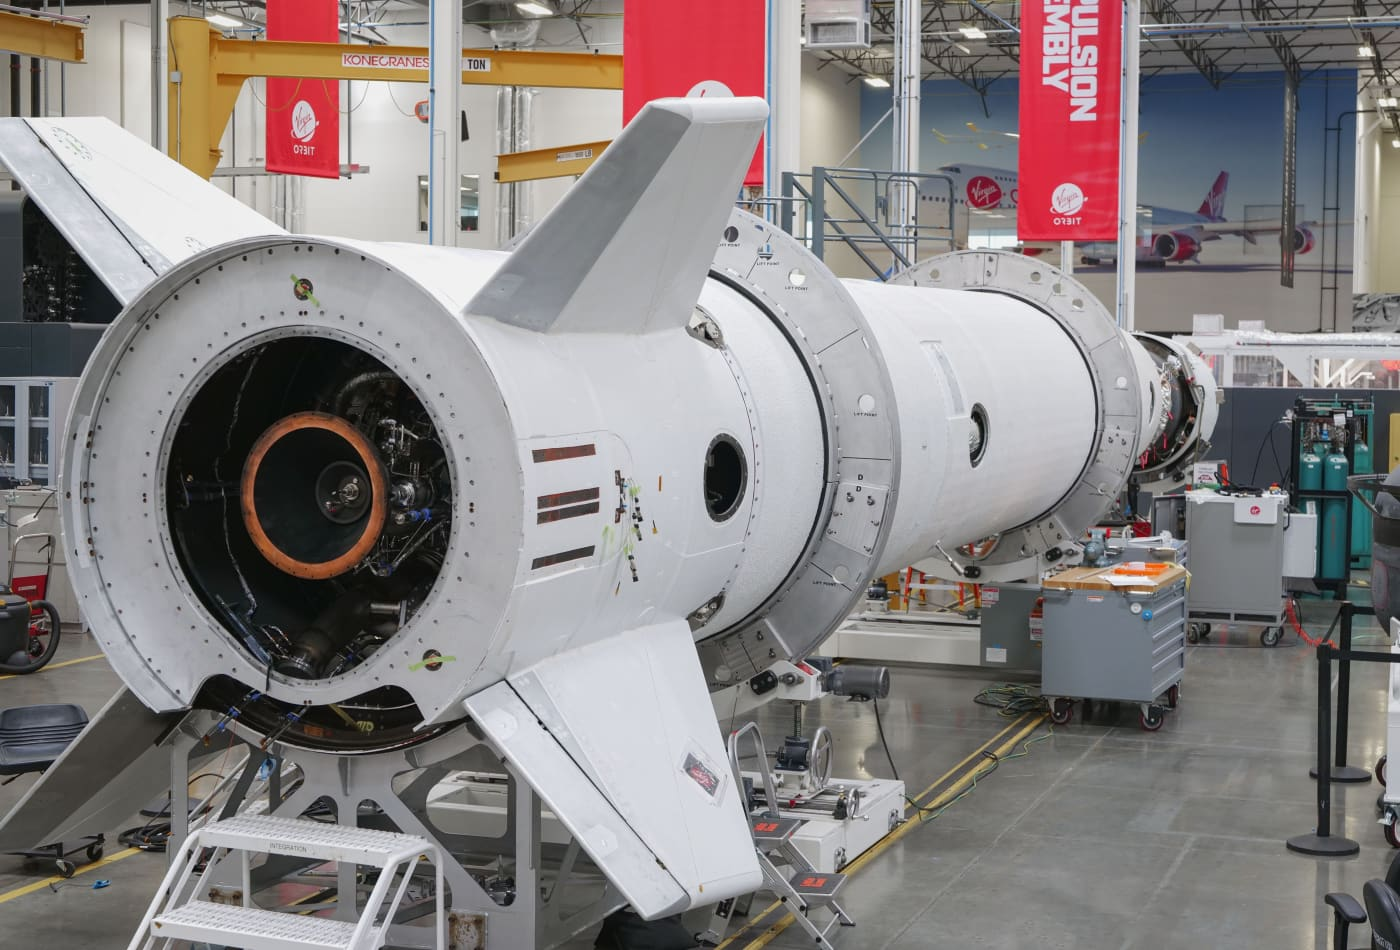 Branson's Virgin Orbit aims to redo launch demo in December, as it seeks $150 million in new capital